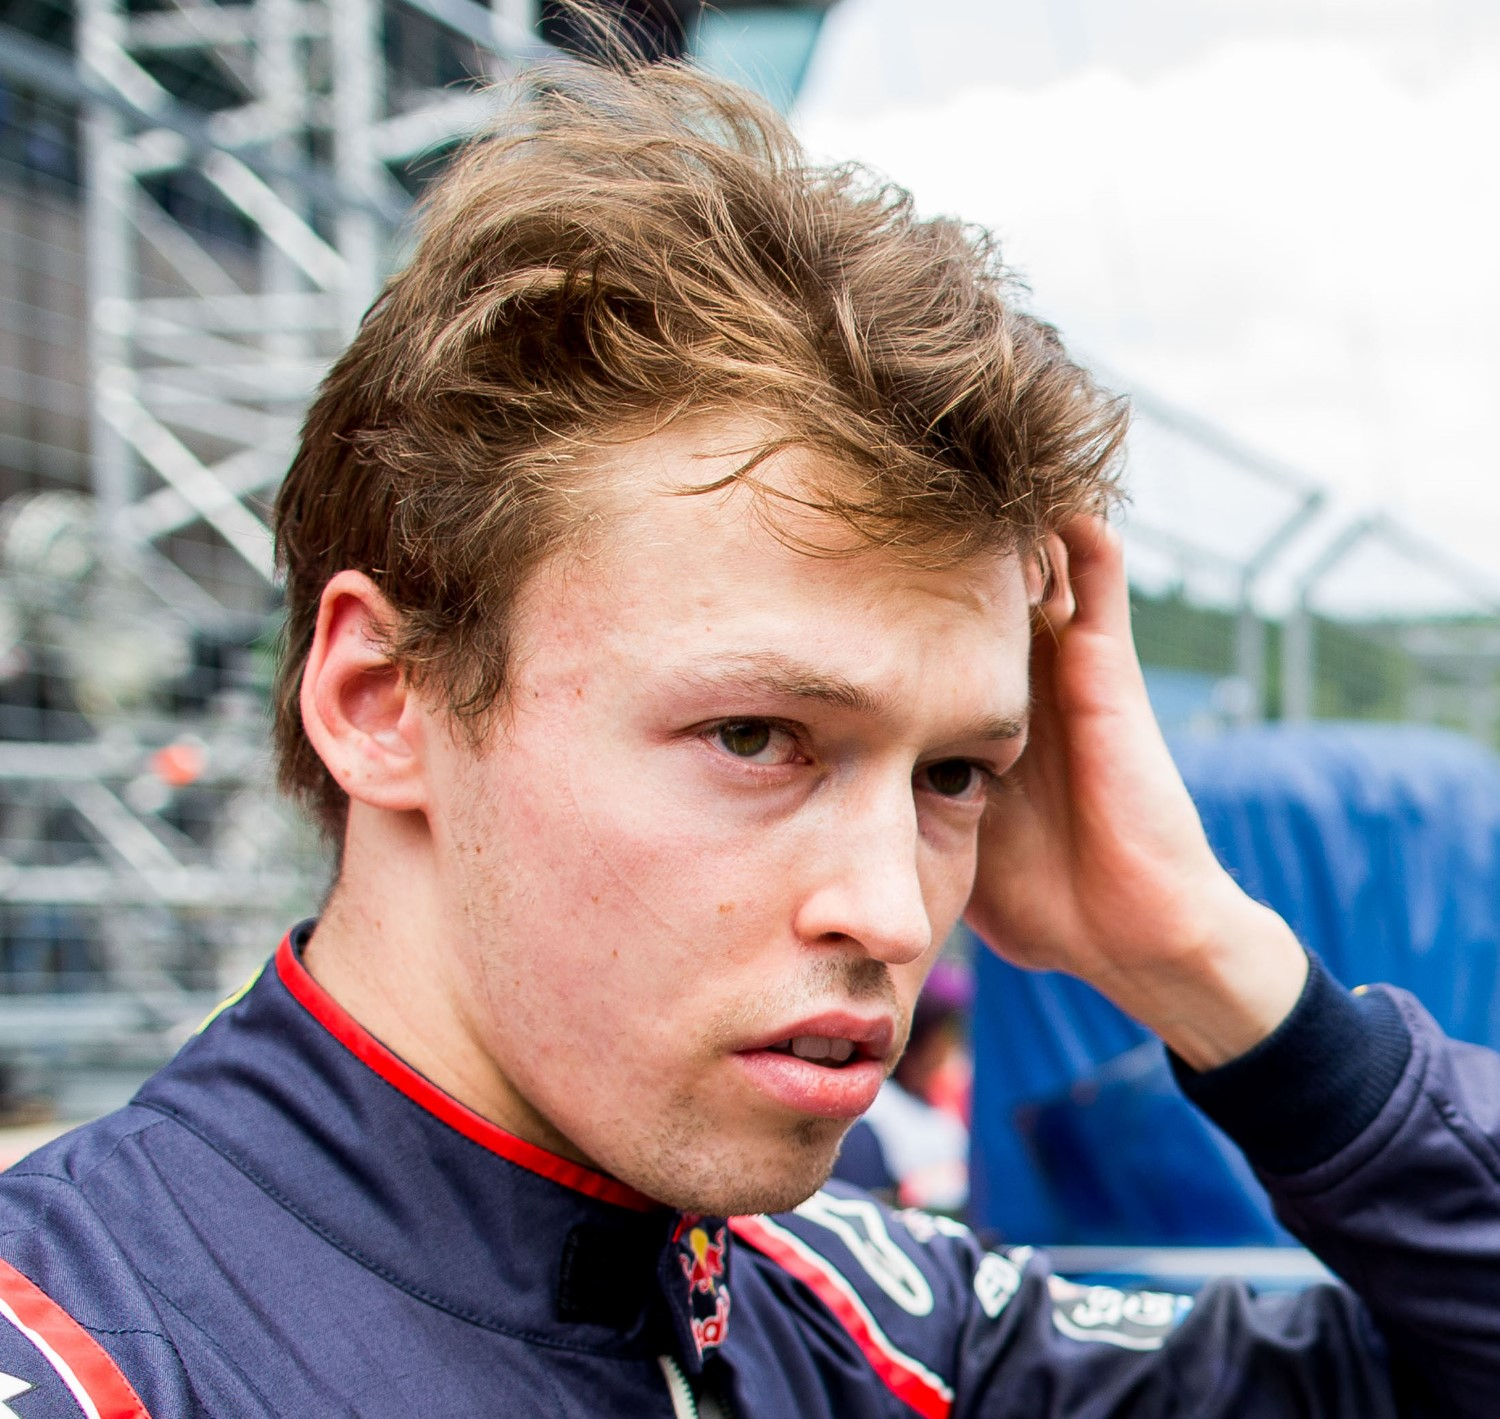 Daniil Kvyat penalized